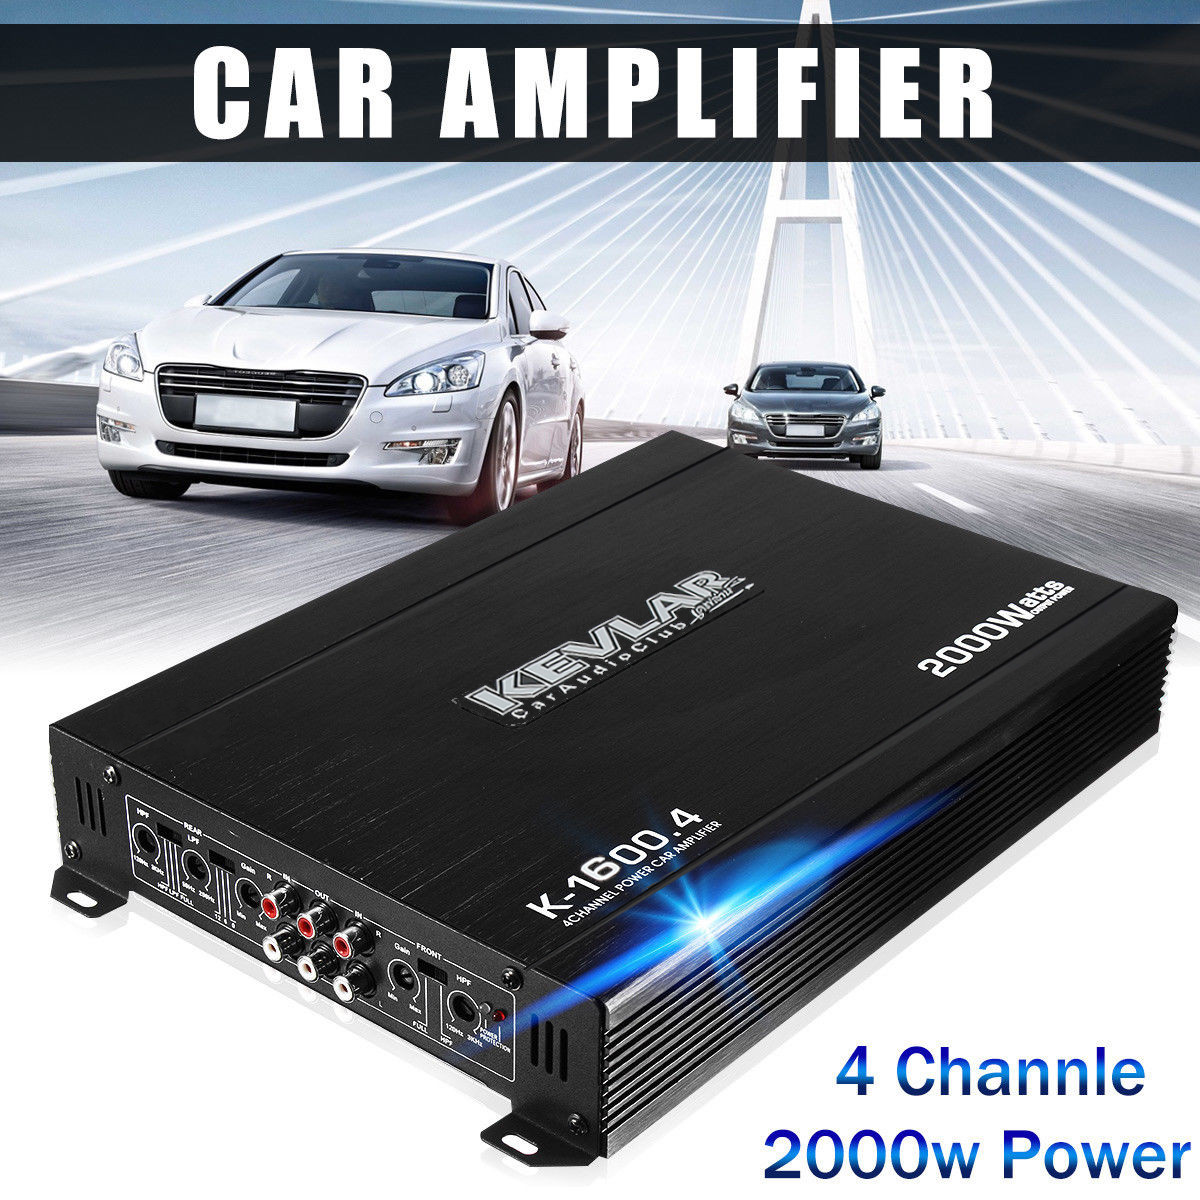 4 Channel Home Car Amplifier Audio 2000w 12db High Power 250 Watt Rms 4channel Amp Wire Kit Savings Amplifiers In From Consumer Electronics On Alibaba